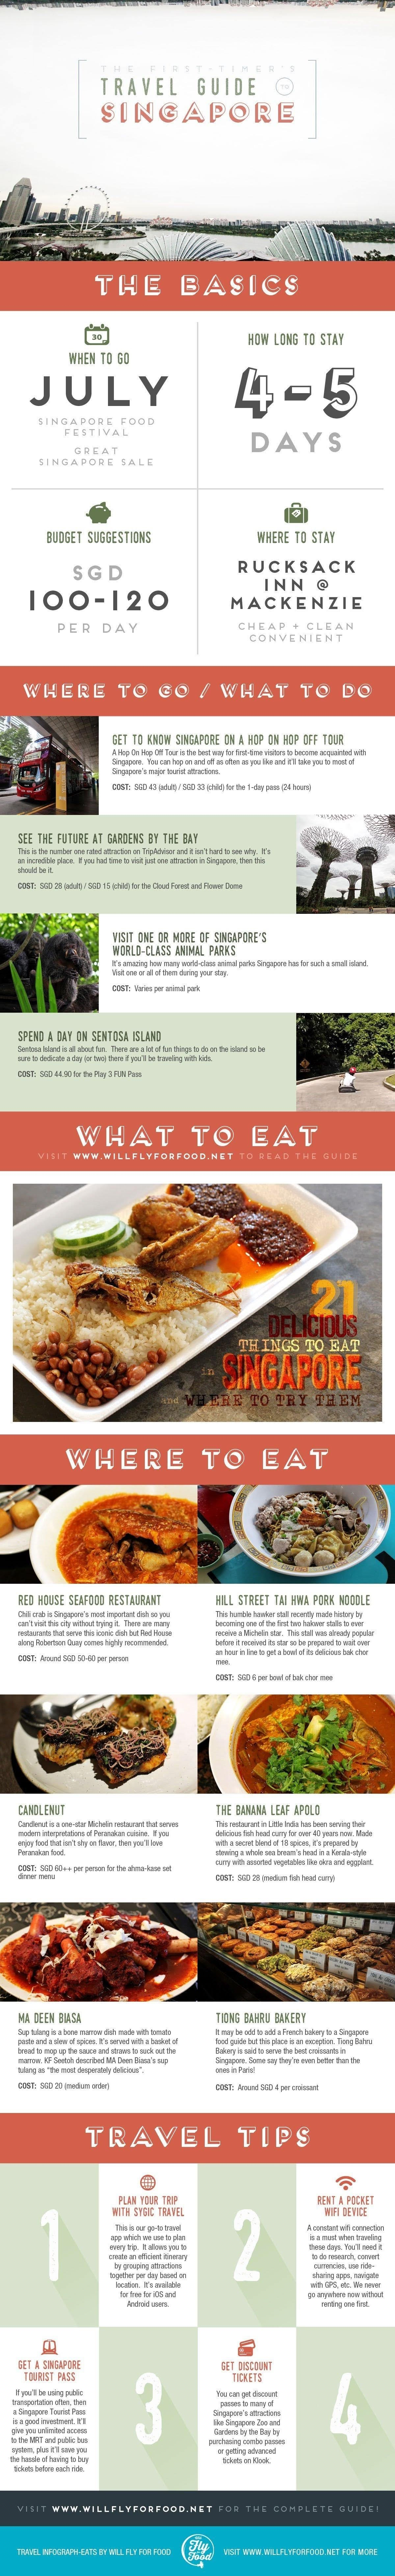 Travel Guide to Singapore #Infographic